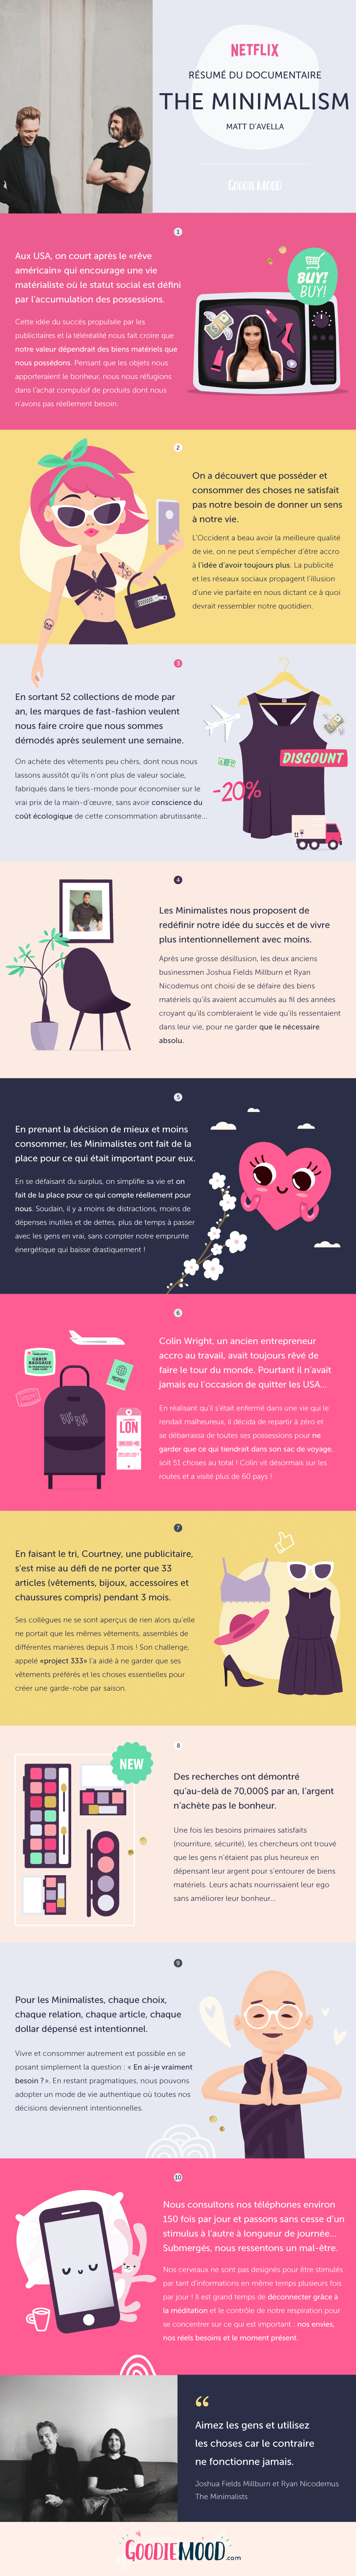 "📺 Changeons notre définition du succès et apprenons à consommer intentionnellement grâce aux Minimalistes 🎬 Résumé du documentaire Netflix ""The Minimalism"" de Matt d'Avella sous forme d'infographie sur Goodie Mood, le blog Feel Good et Créativité ⭐️ #minimalism #netflix #minimaliste #minimalisme #documentaire #infographie #graphisme #blog #intention #consommation #succes #changerdevie"